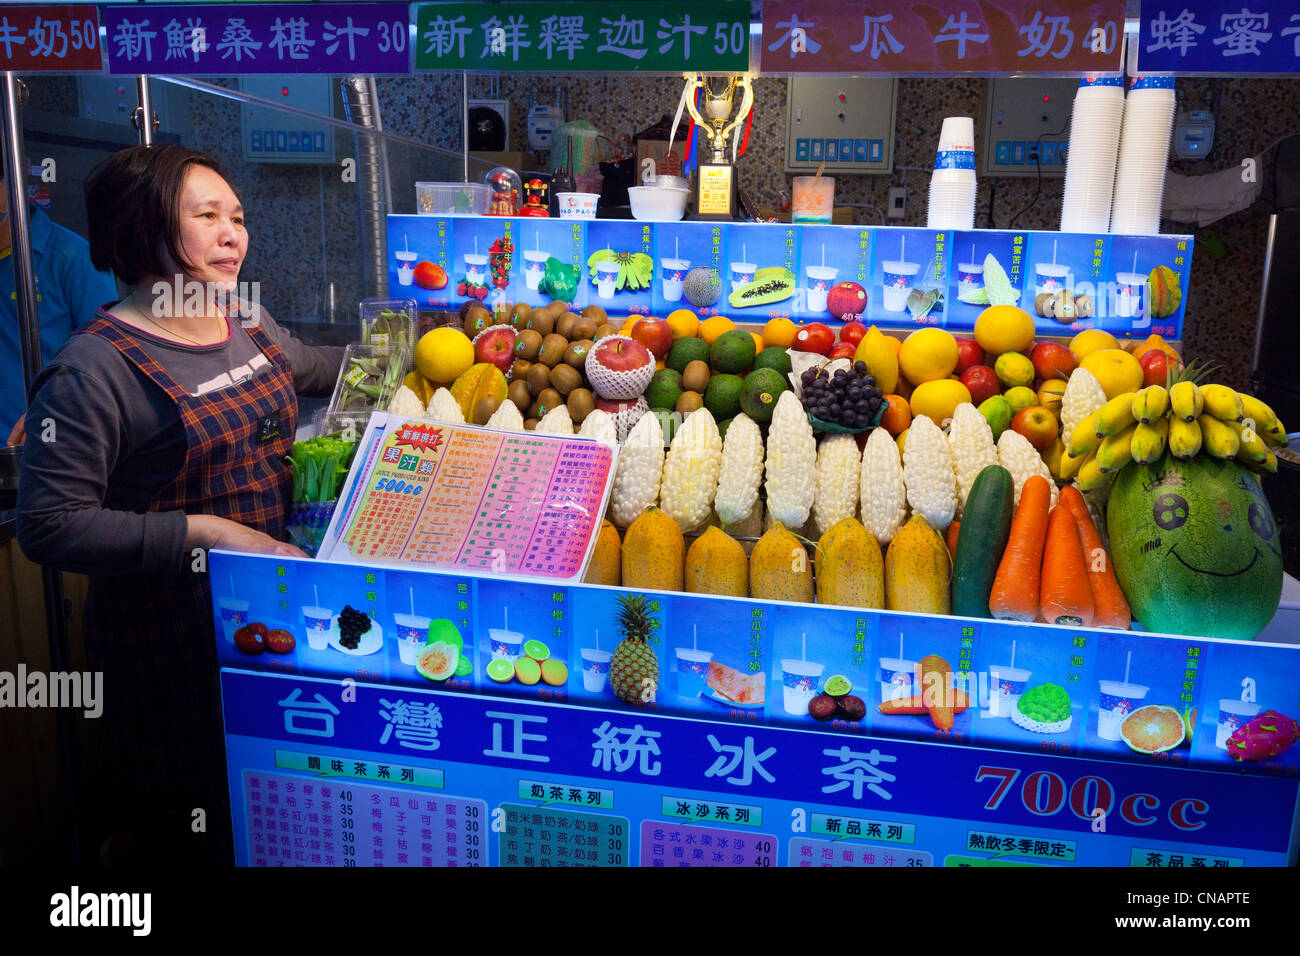 Fruit and vegetable stall Shilin Night Market Taipei Taiwan. JMH5992 - Stock Image